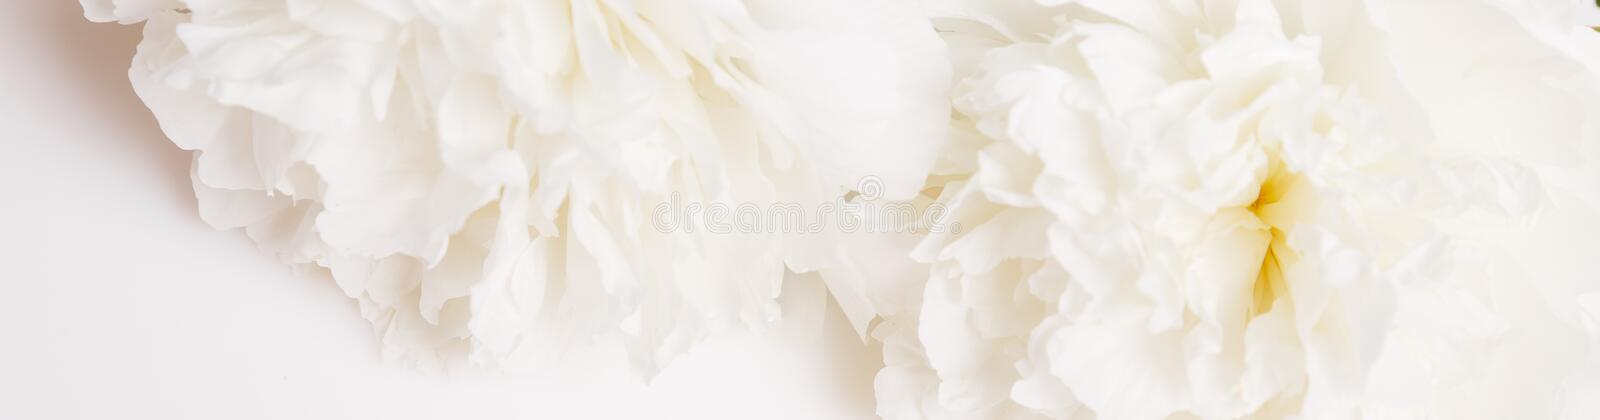 Romantic banner, delicate white peonies flowers close-up. Fragrant pink petals royalty free stock images